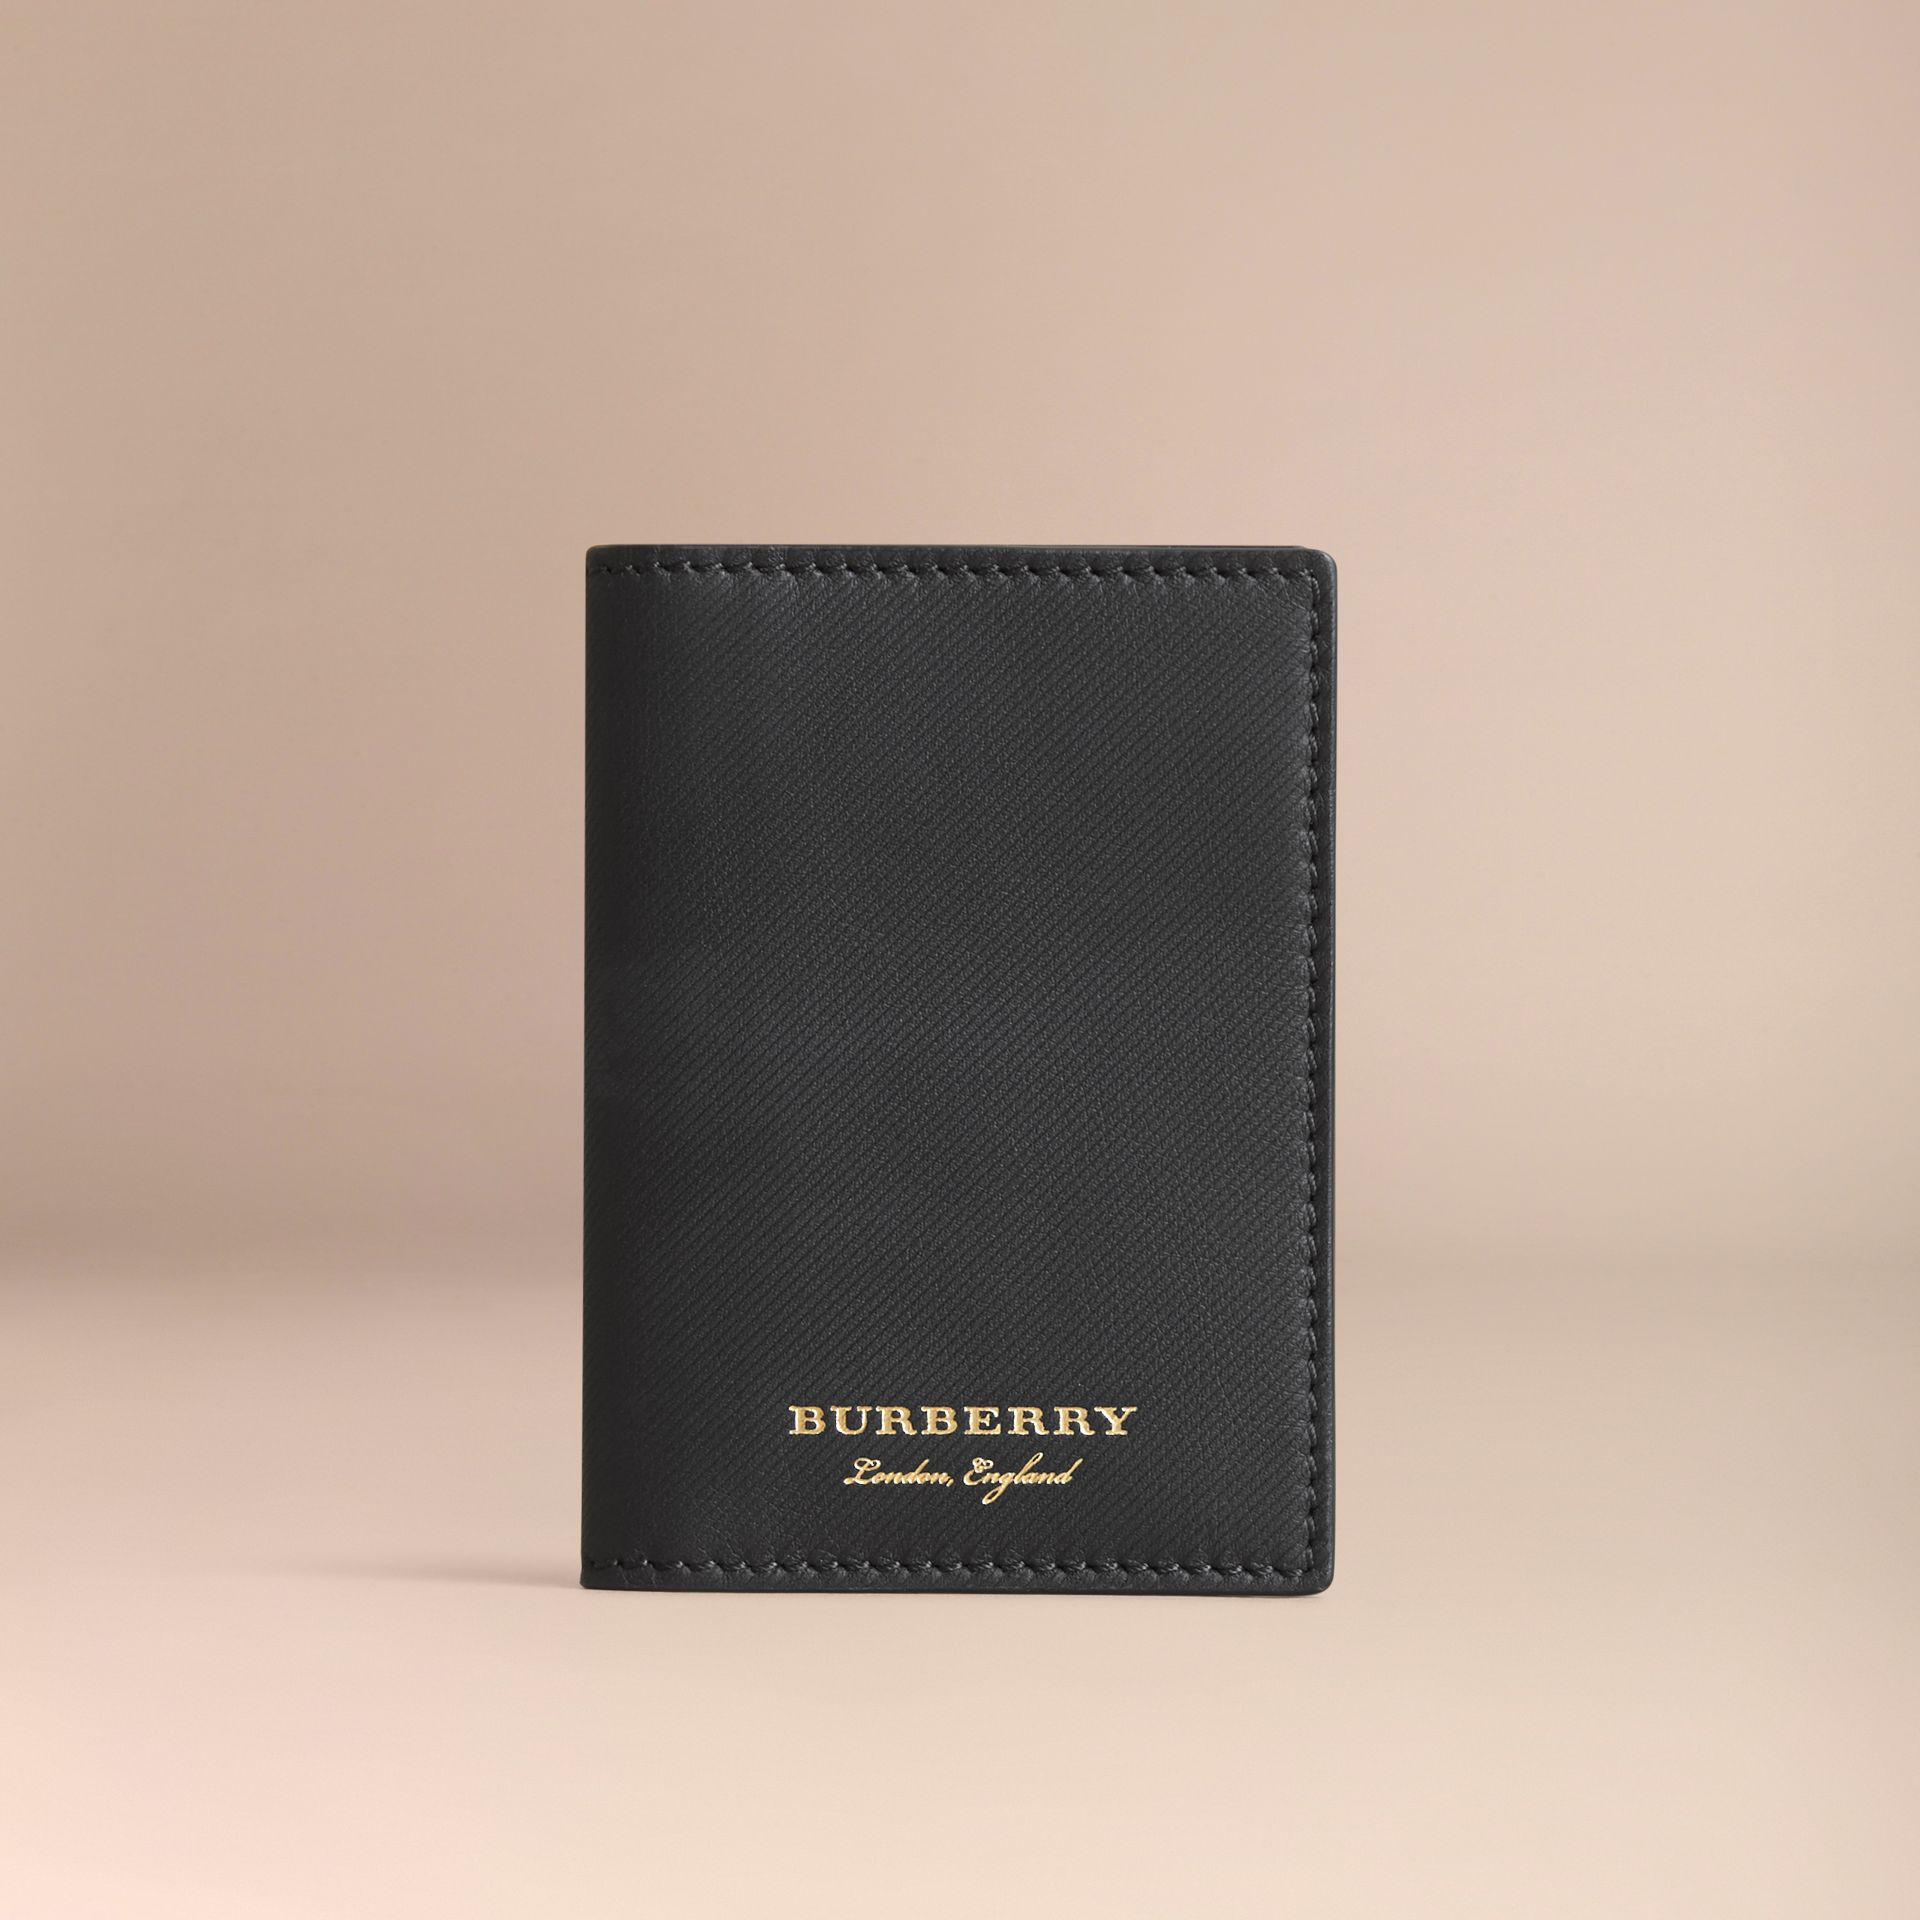 Trench Leather Folding Card Case in Black - Men | Burberry - gallery image 5